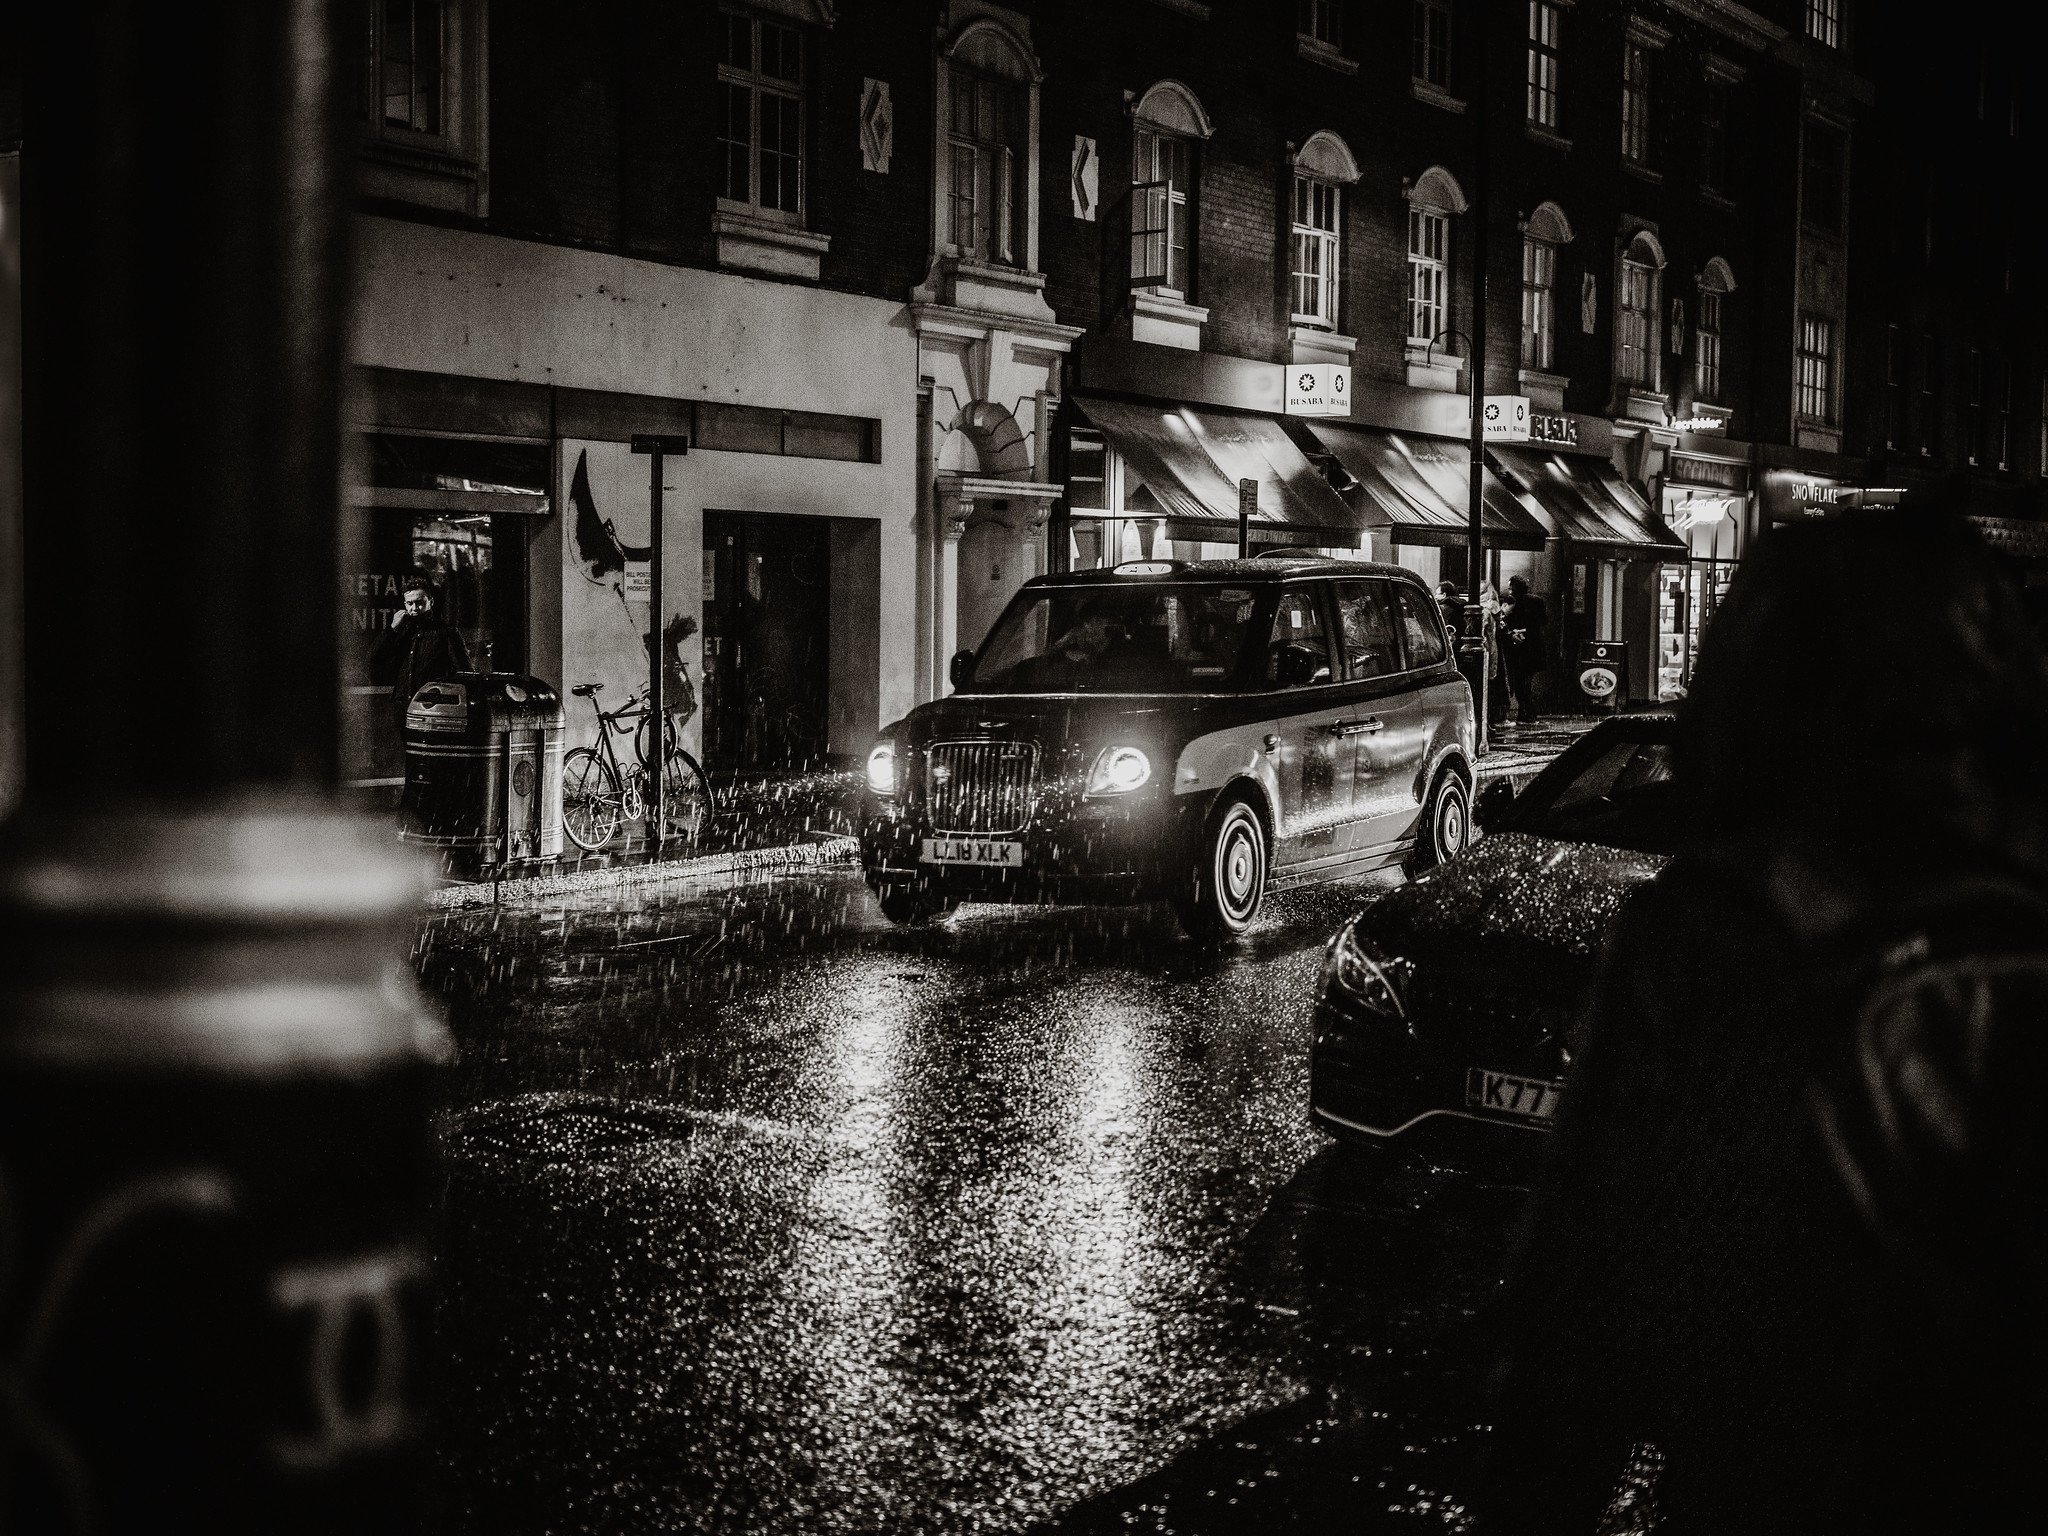 Taxi driving through the rain